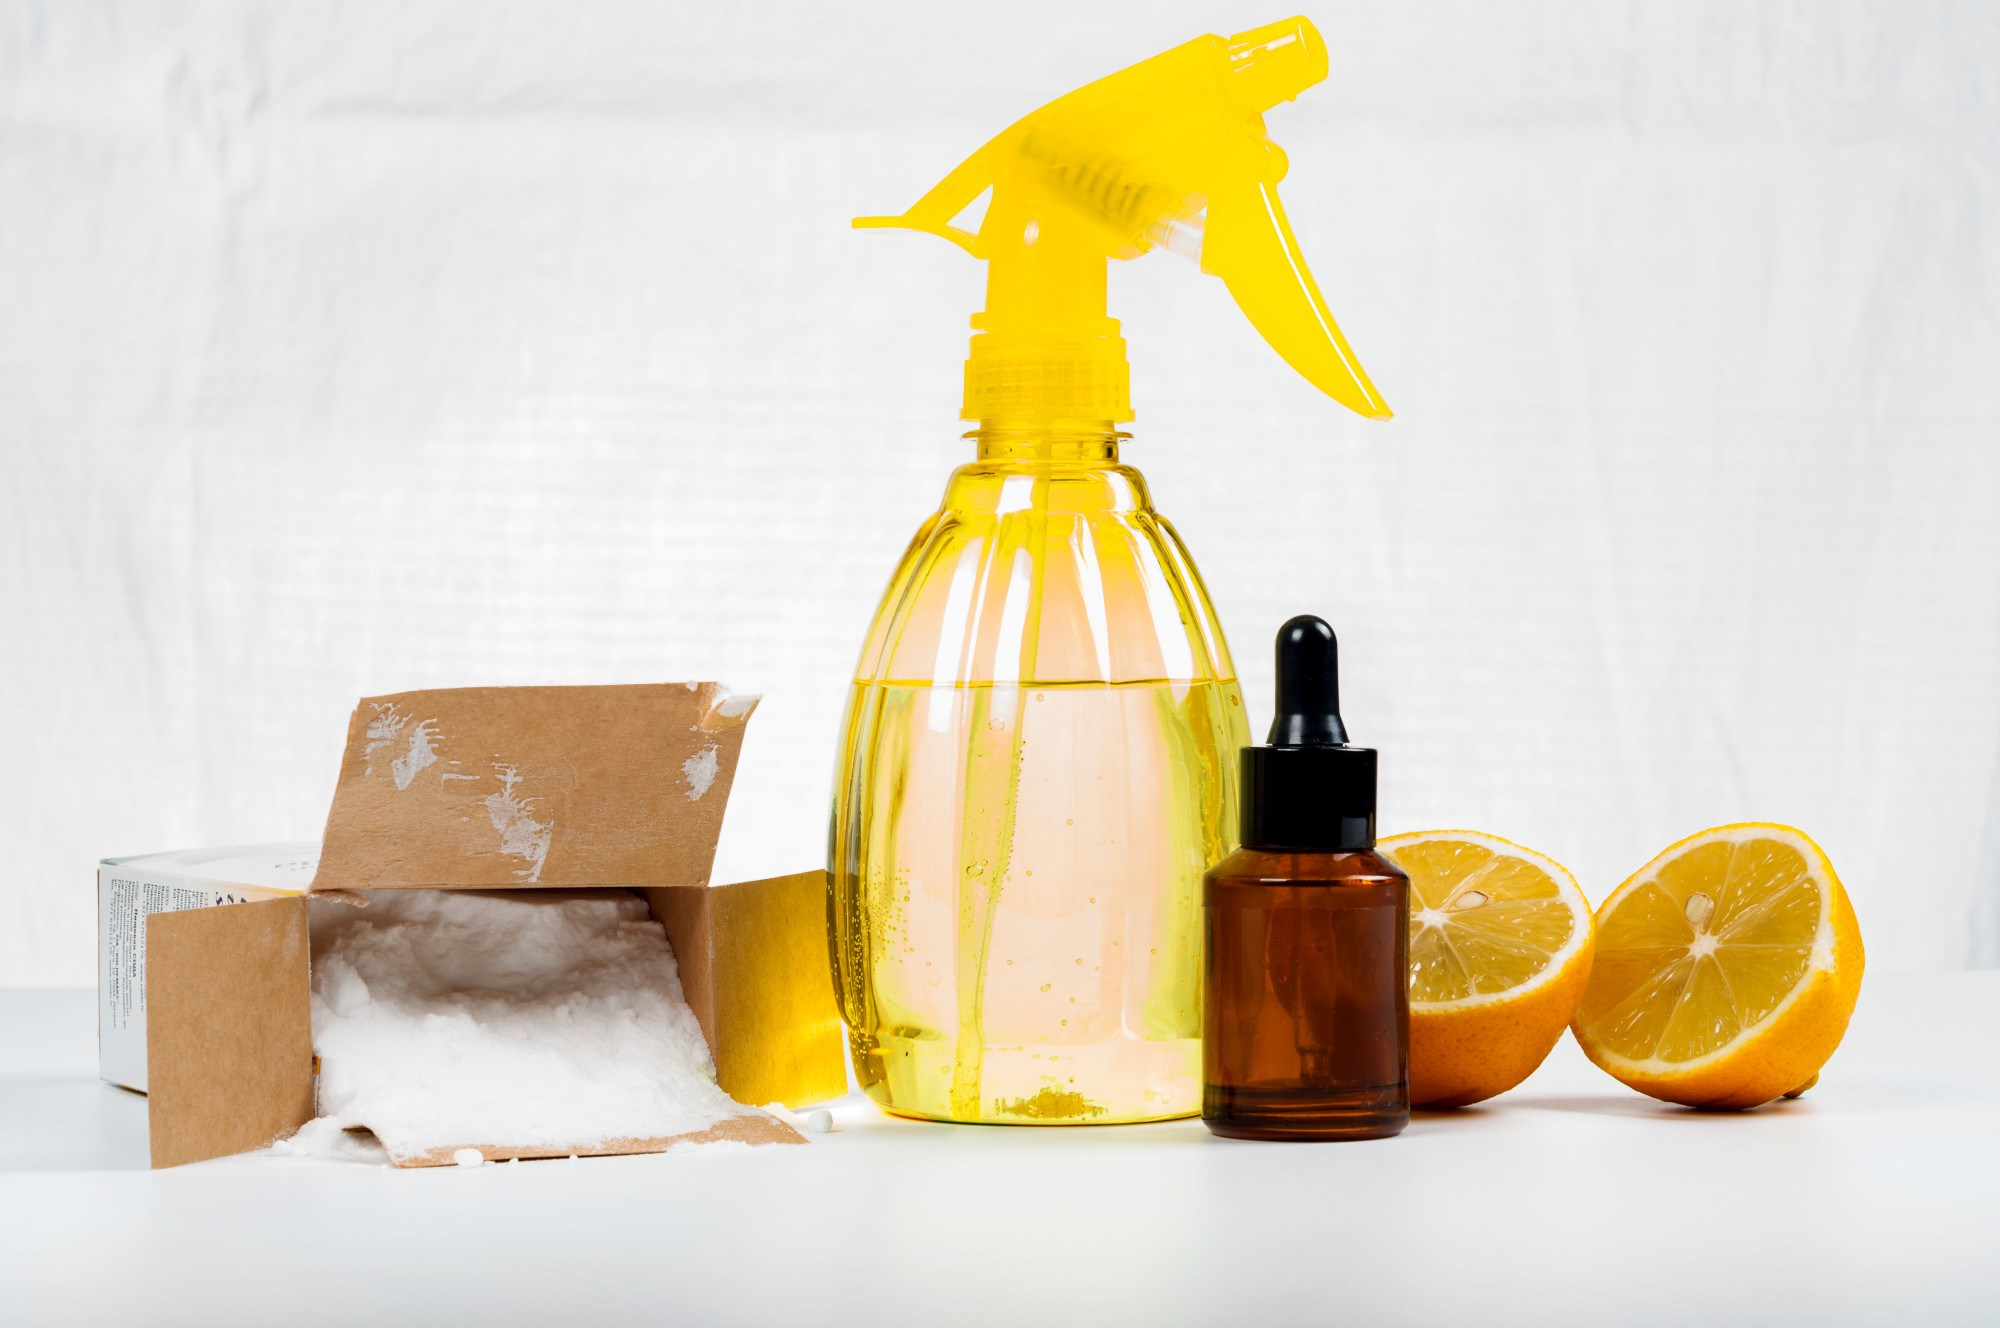 The Top Reasons Why You Should Make the Switch to Green Cleaning Products